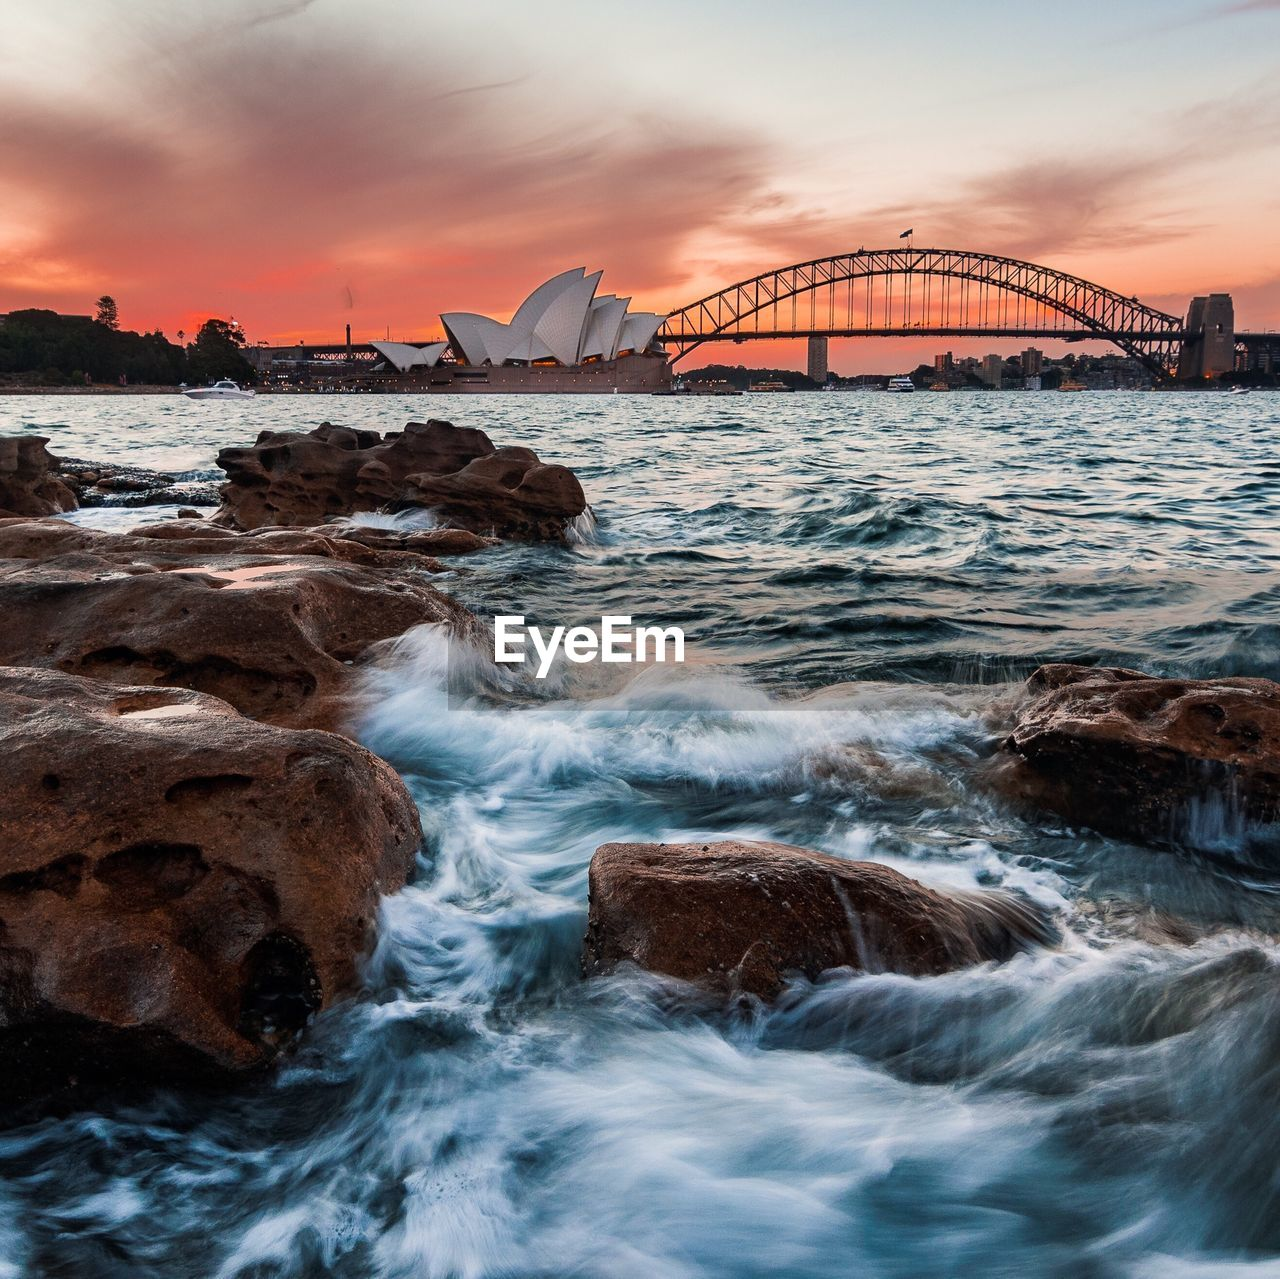 water, sunset, built structure, sea, sky, bridge, rock, bridge - man made structure, architecture, connection, rock - object, motion, cloud - sky, nature, solid, transportation, scenics - nature, no people, beauty in nature, outdoors, bay